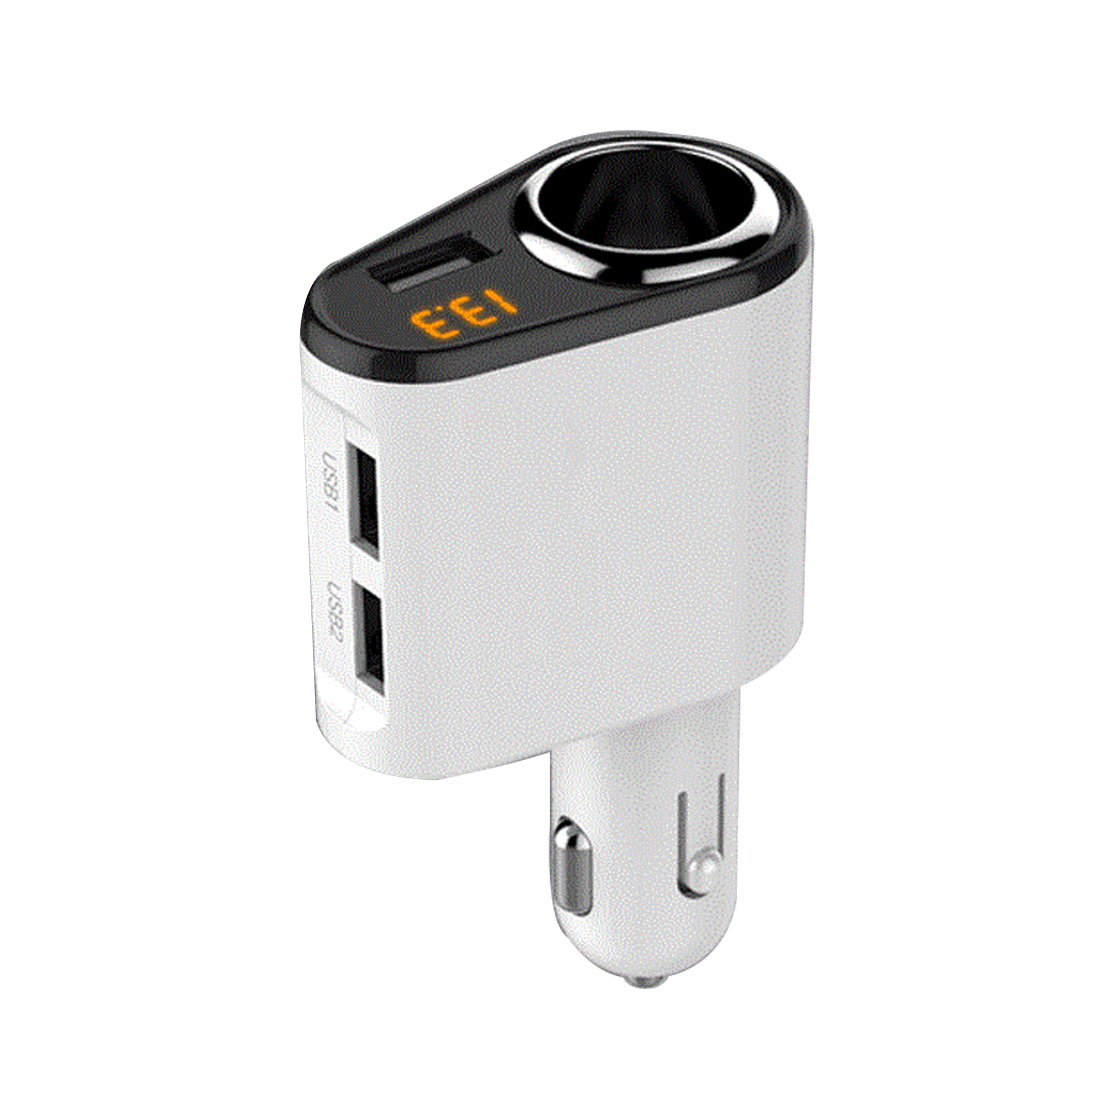 Etmakit Good Sale Car Charger 3 USB Ports 5V 3.1A Car-Charger 1 Socket Cigarette Lighter Splitter Quick Charger for Mobile Phone